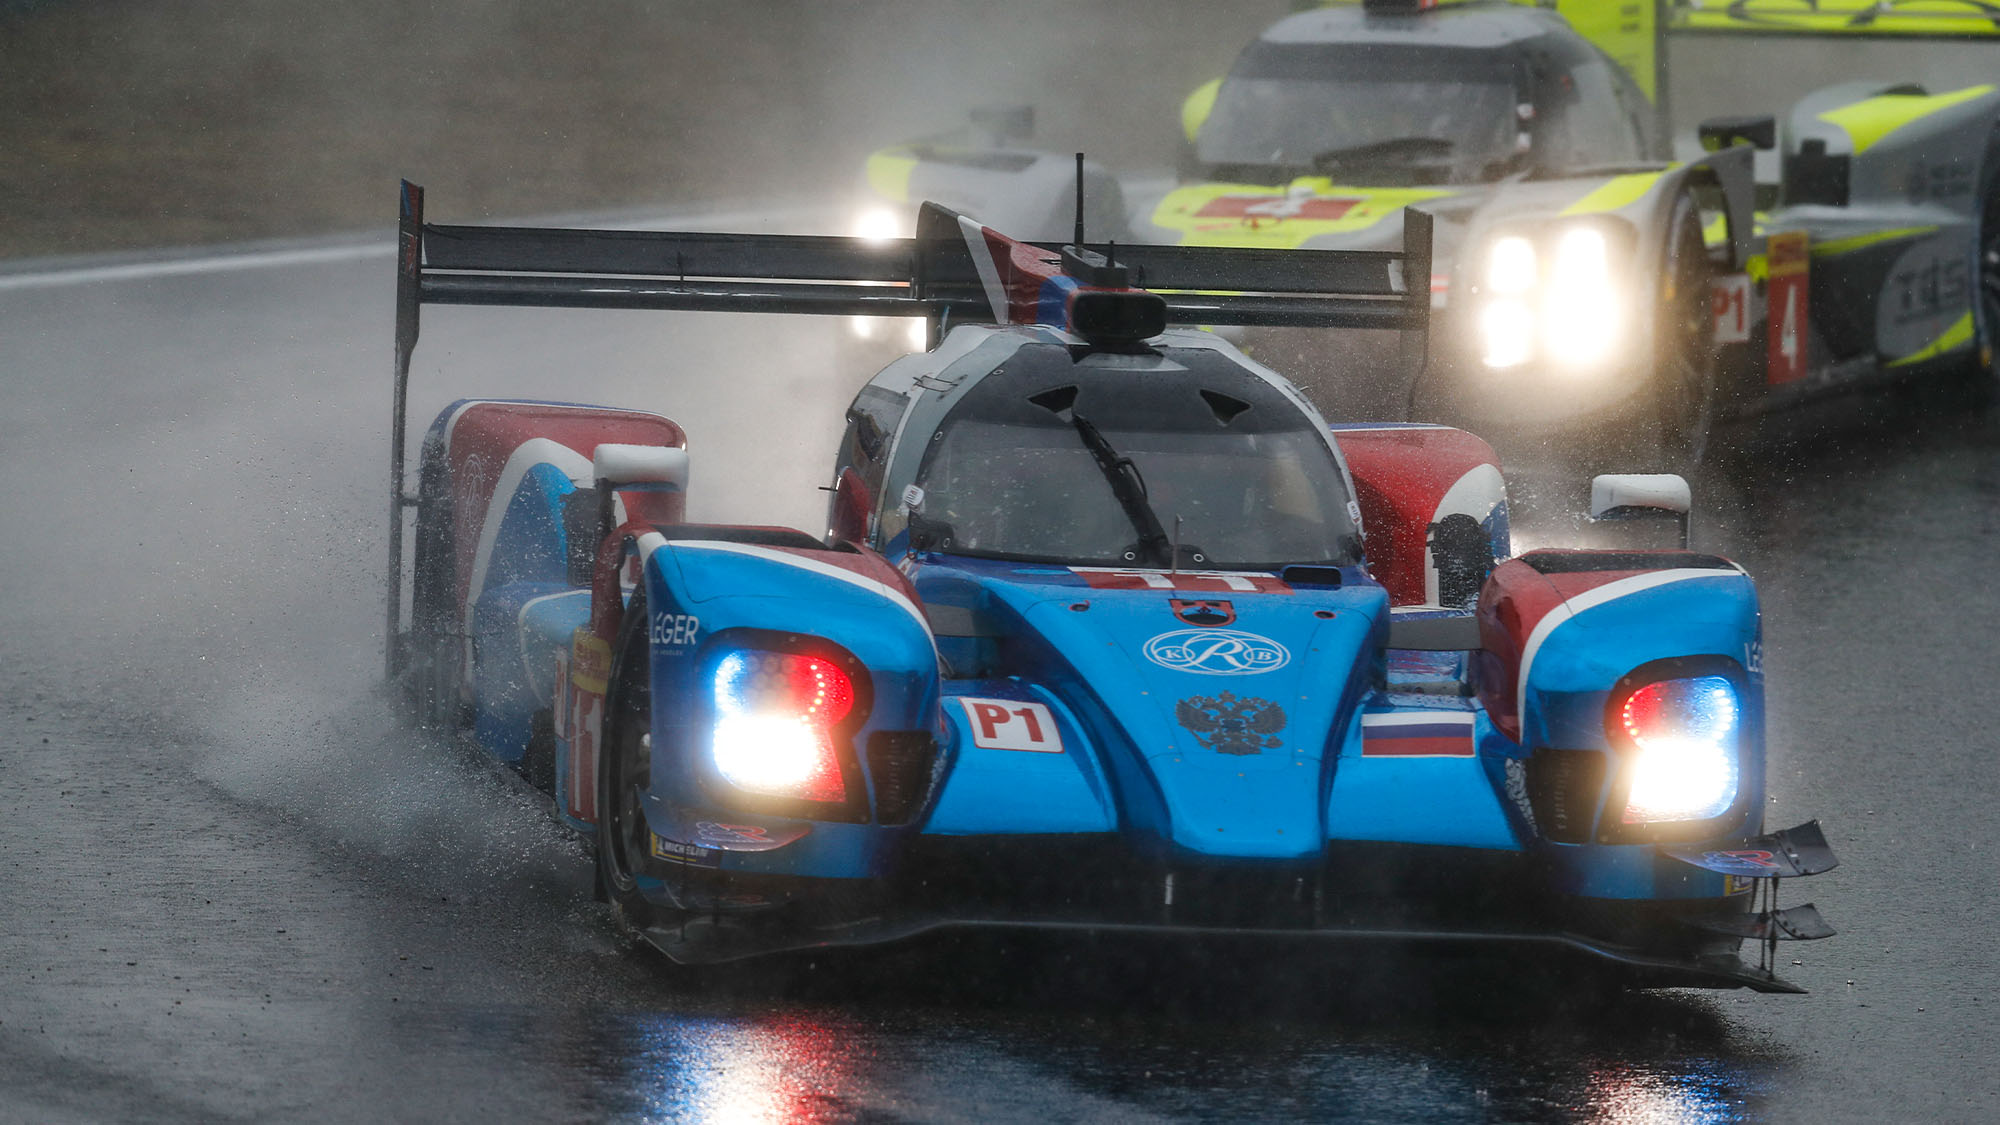 11 ALESHIN Mikhail (rus), PETROV Vitaly (rus), BUTTON Jenson (gbr), BR engineering BR1 AER team SMP racing, action during the 2018 FIA WEC World Endurance Championship, 6 Hours of Shanghai from november 16 to 18, at Shanghai, China - Photo Clément Marin / DPPI